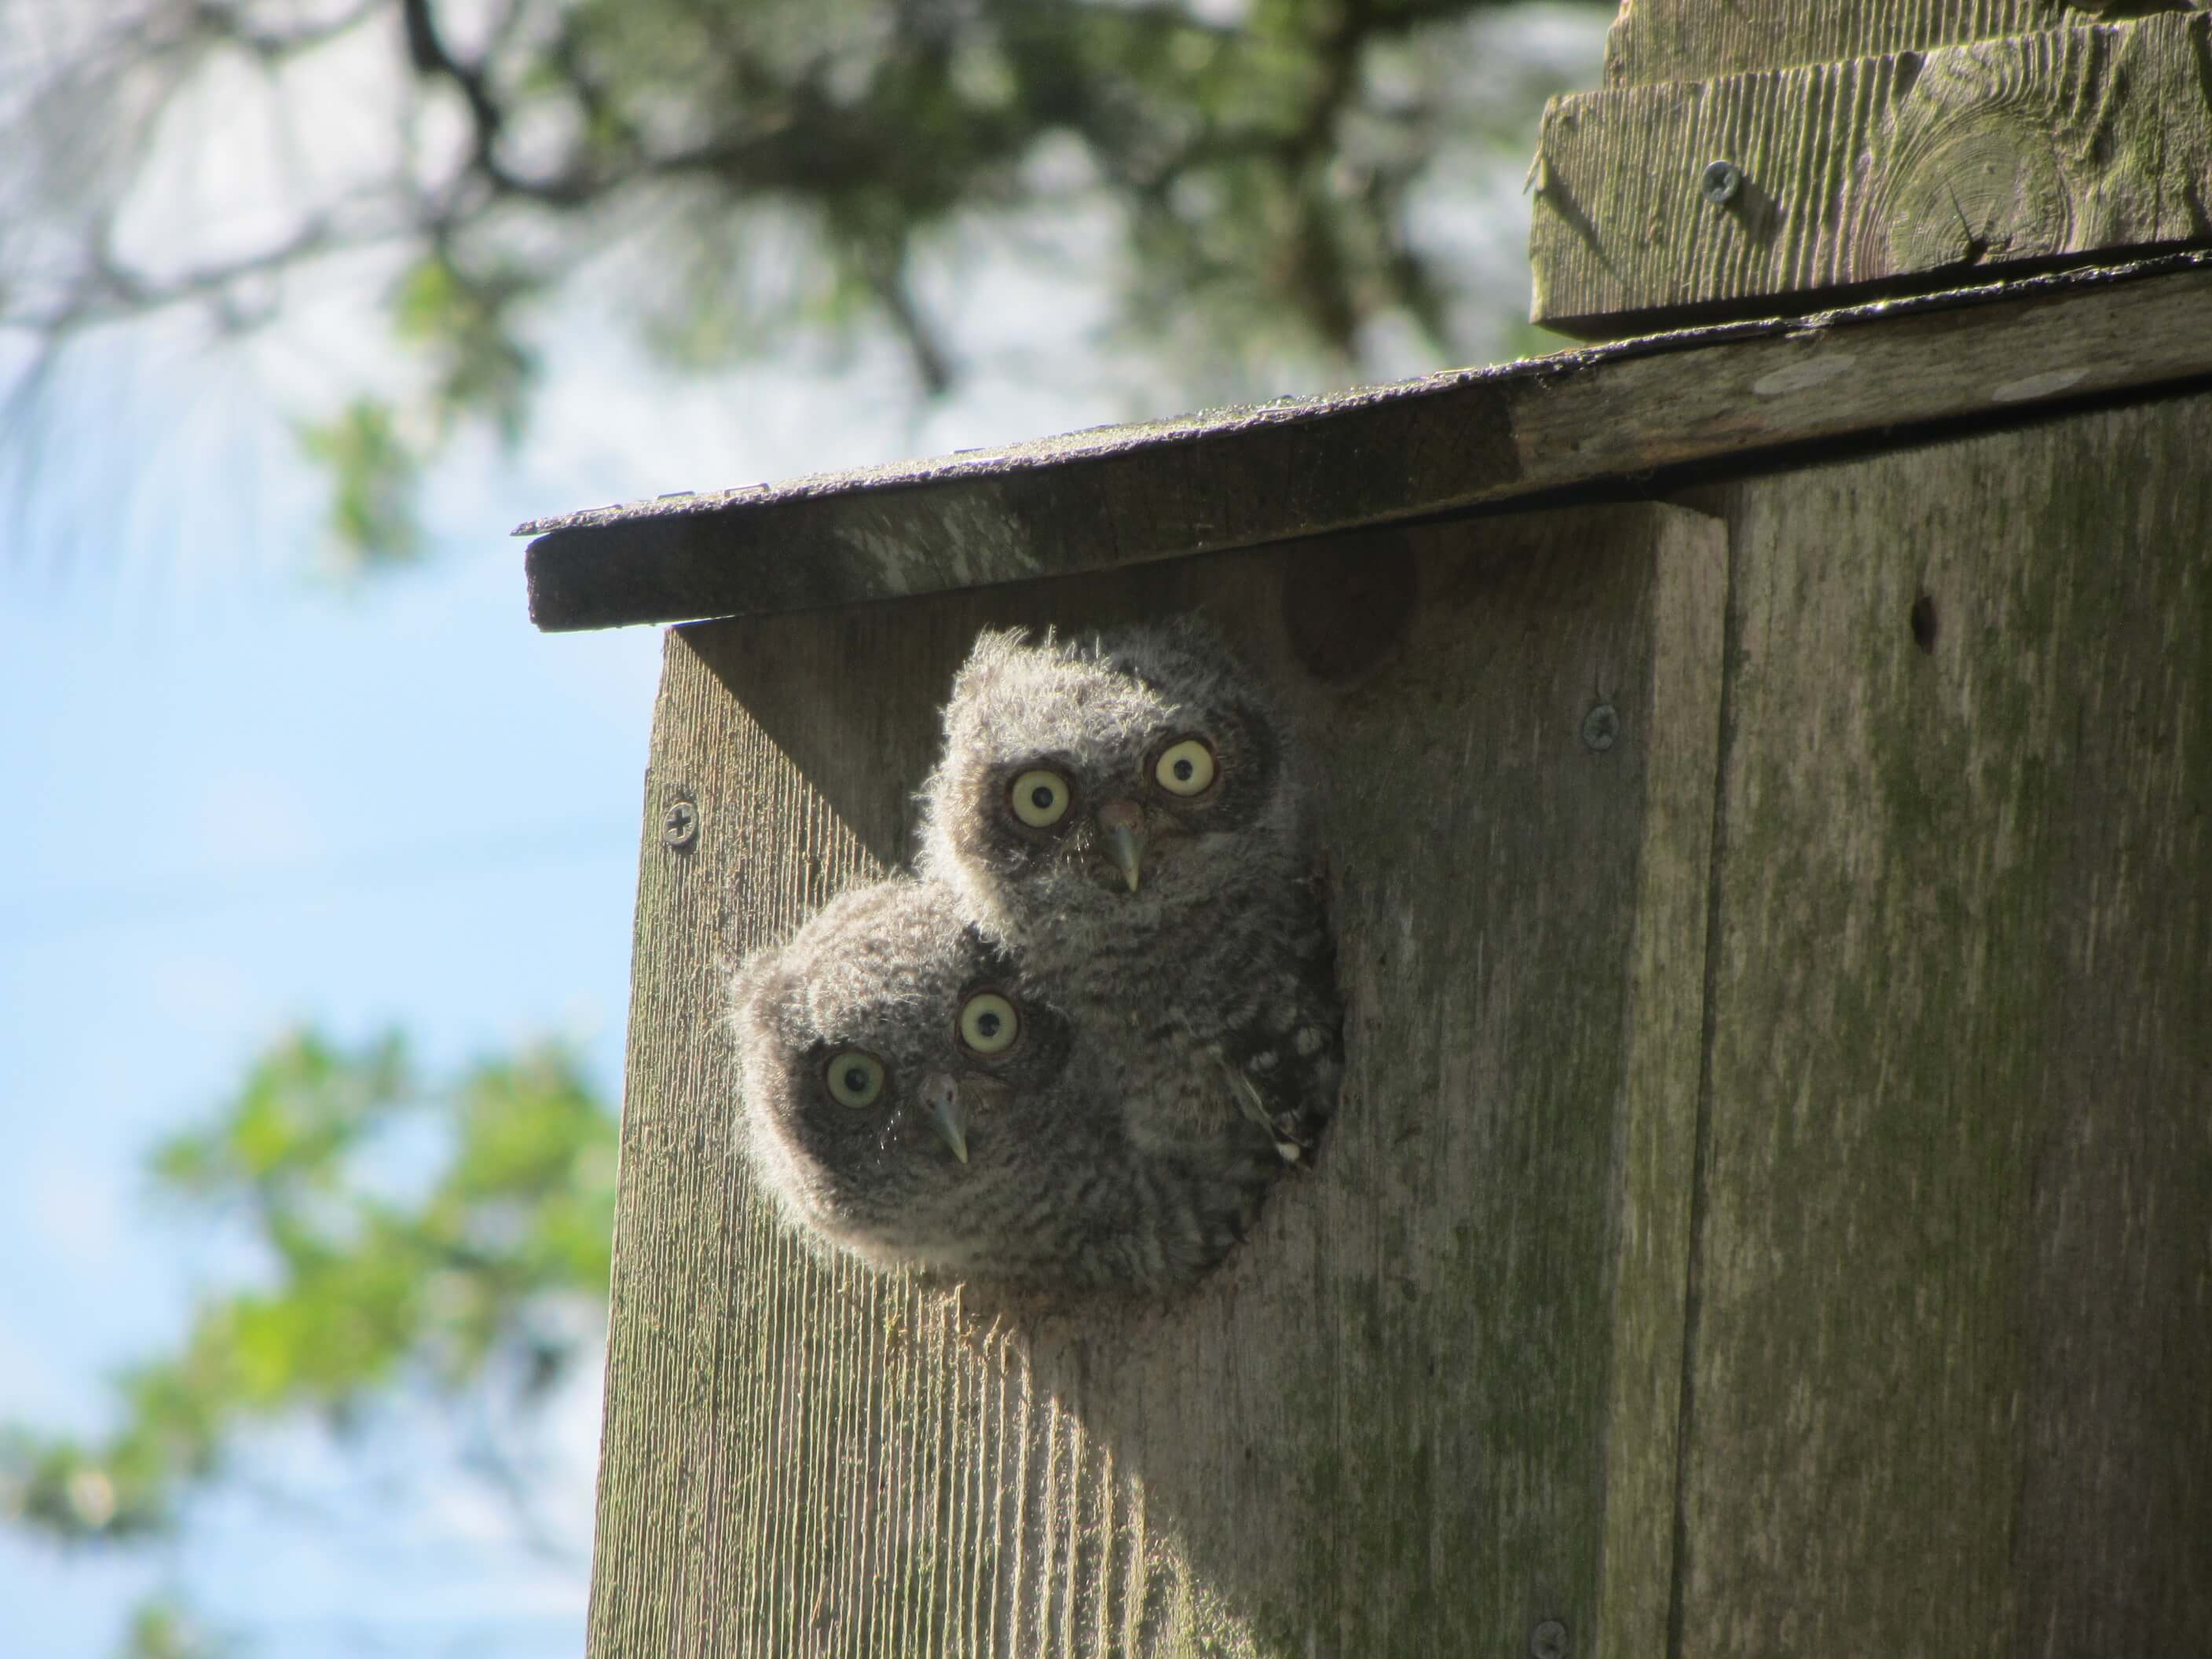 photo of two baby owls poking their heads out of a bird house